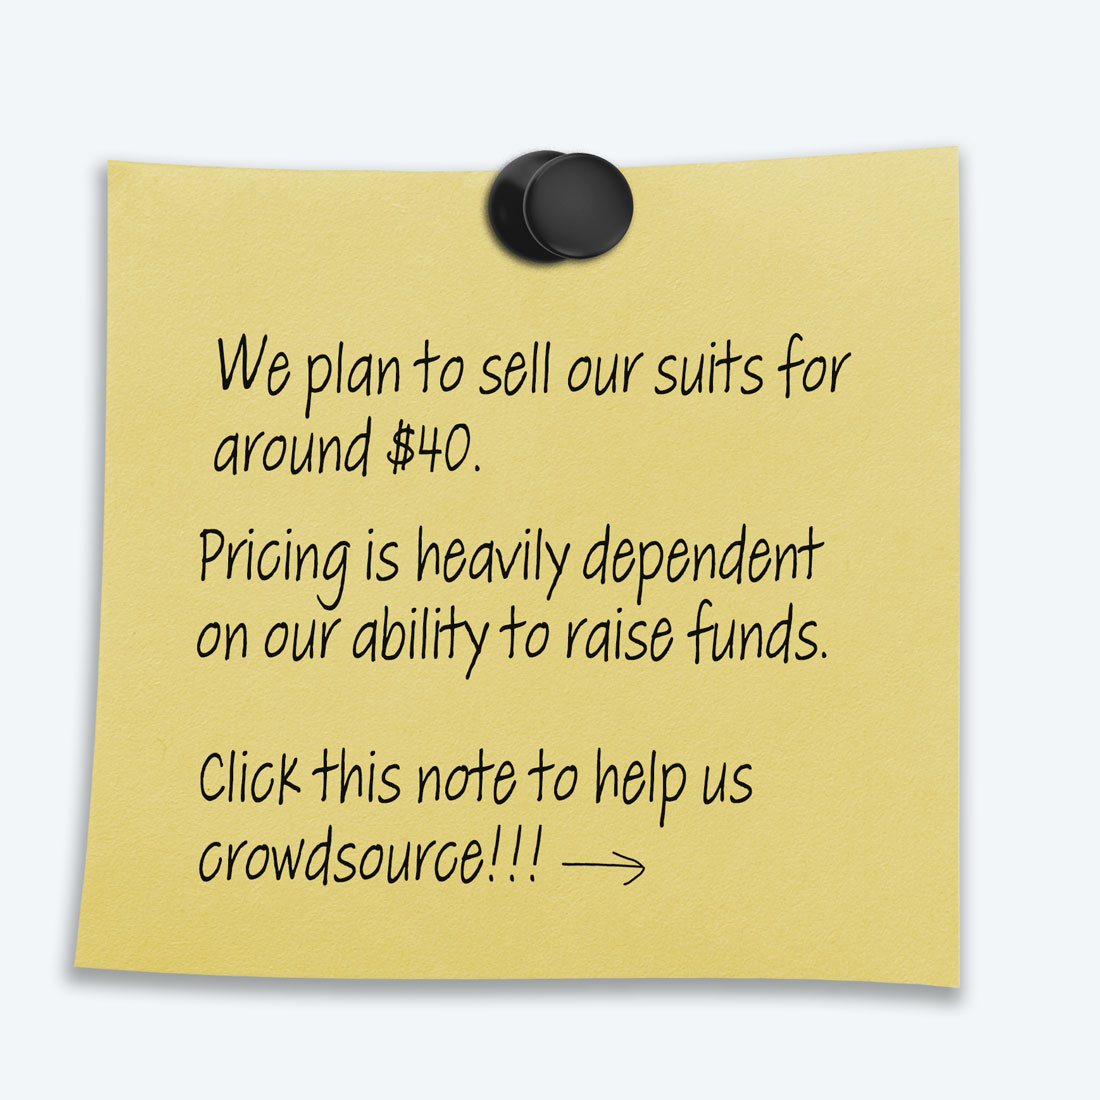 """Yellow post it note that states """"We plan to sell our suits for around $40. Pricing is heavily dependent on our ability to raise funds. Click this note to help us crowdsource!!!"""""""